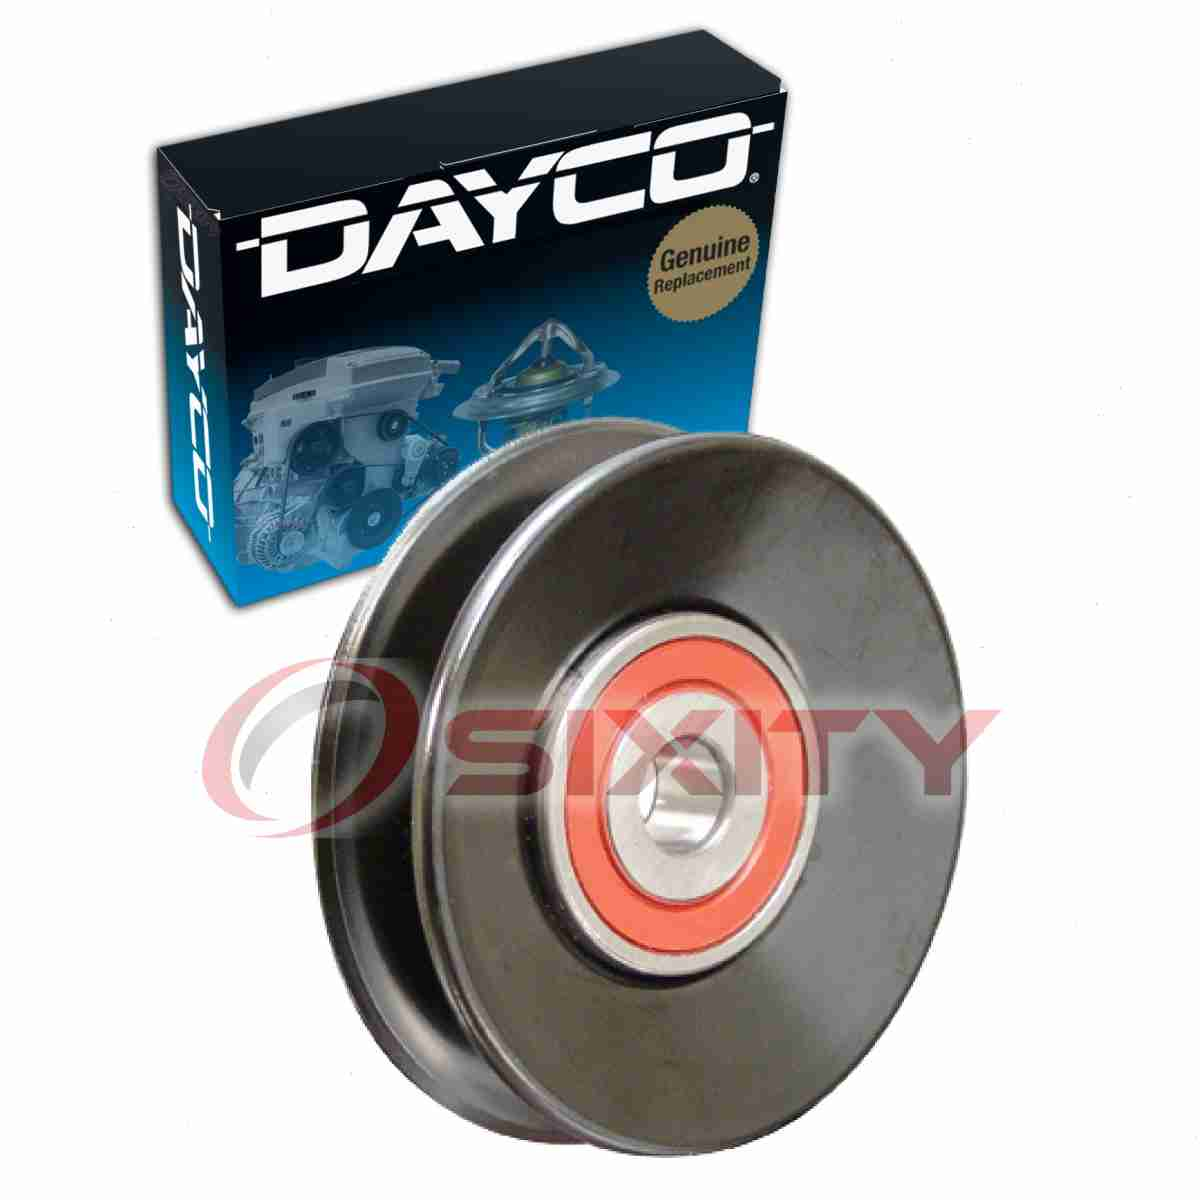 Details about Dayco Power Steering Drive Belt Idler Pulley for 1995-1997  Nissan Pickup wu